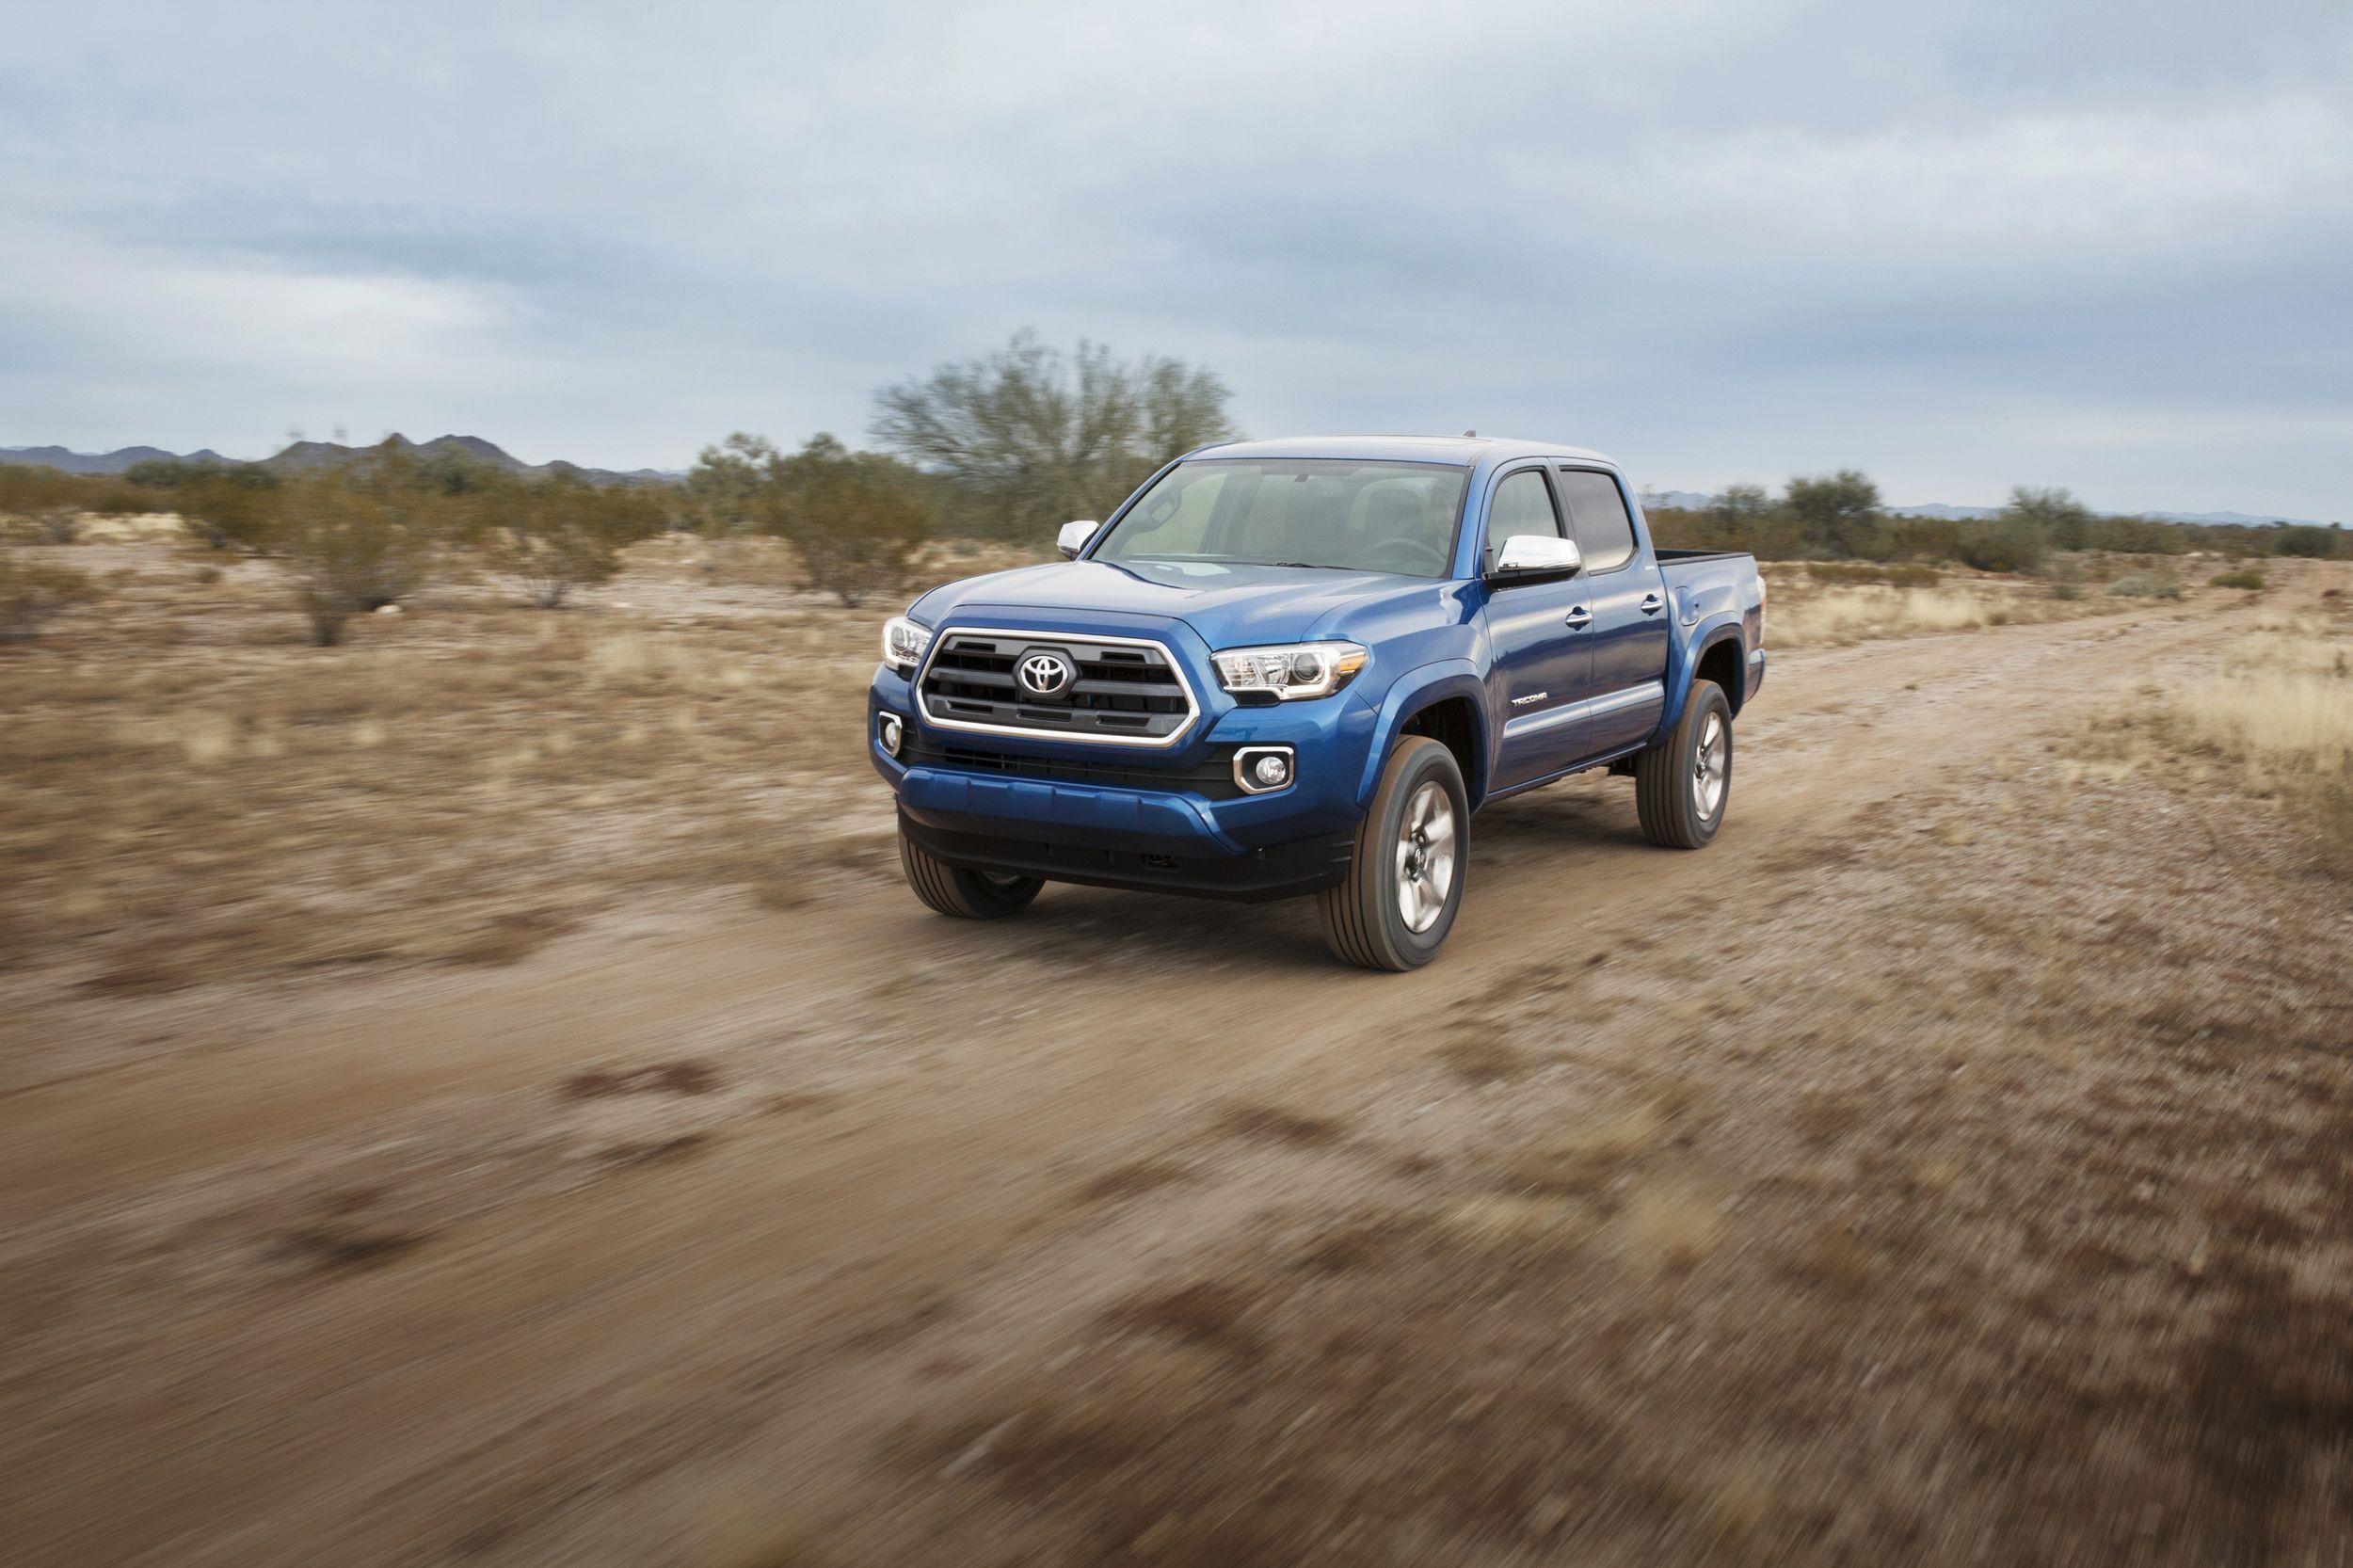 Toyota Tacoma Wallpaper, Live Toyota Tacoma Wallpapers (36), PC ...